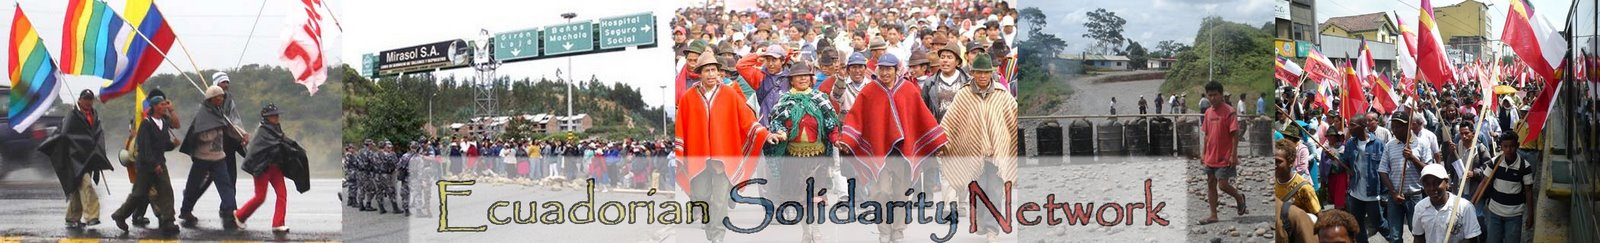 Ecuador Solidarity Network